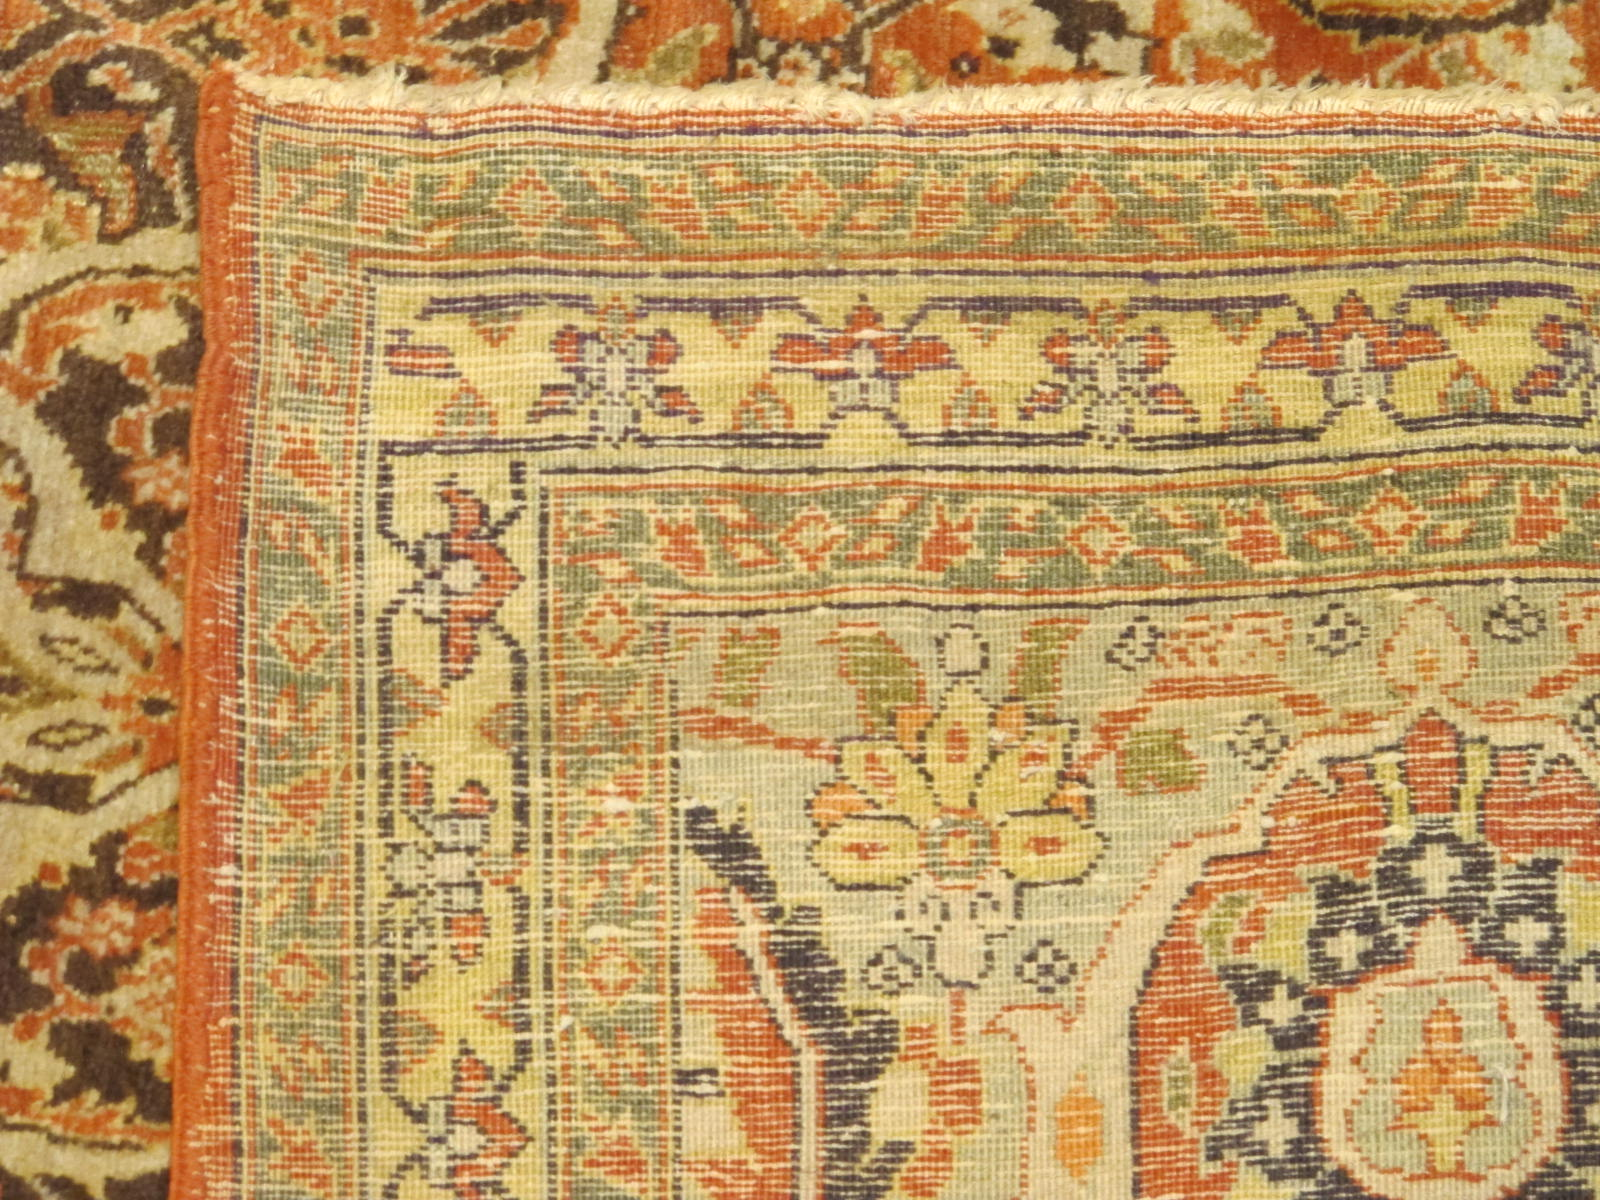 10 antique persian tabriz rug 11x17,4 (4)